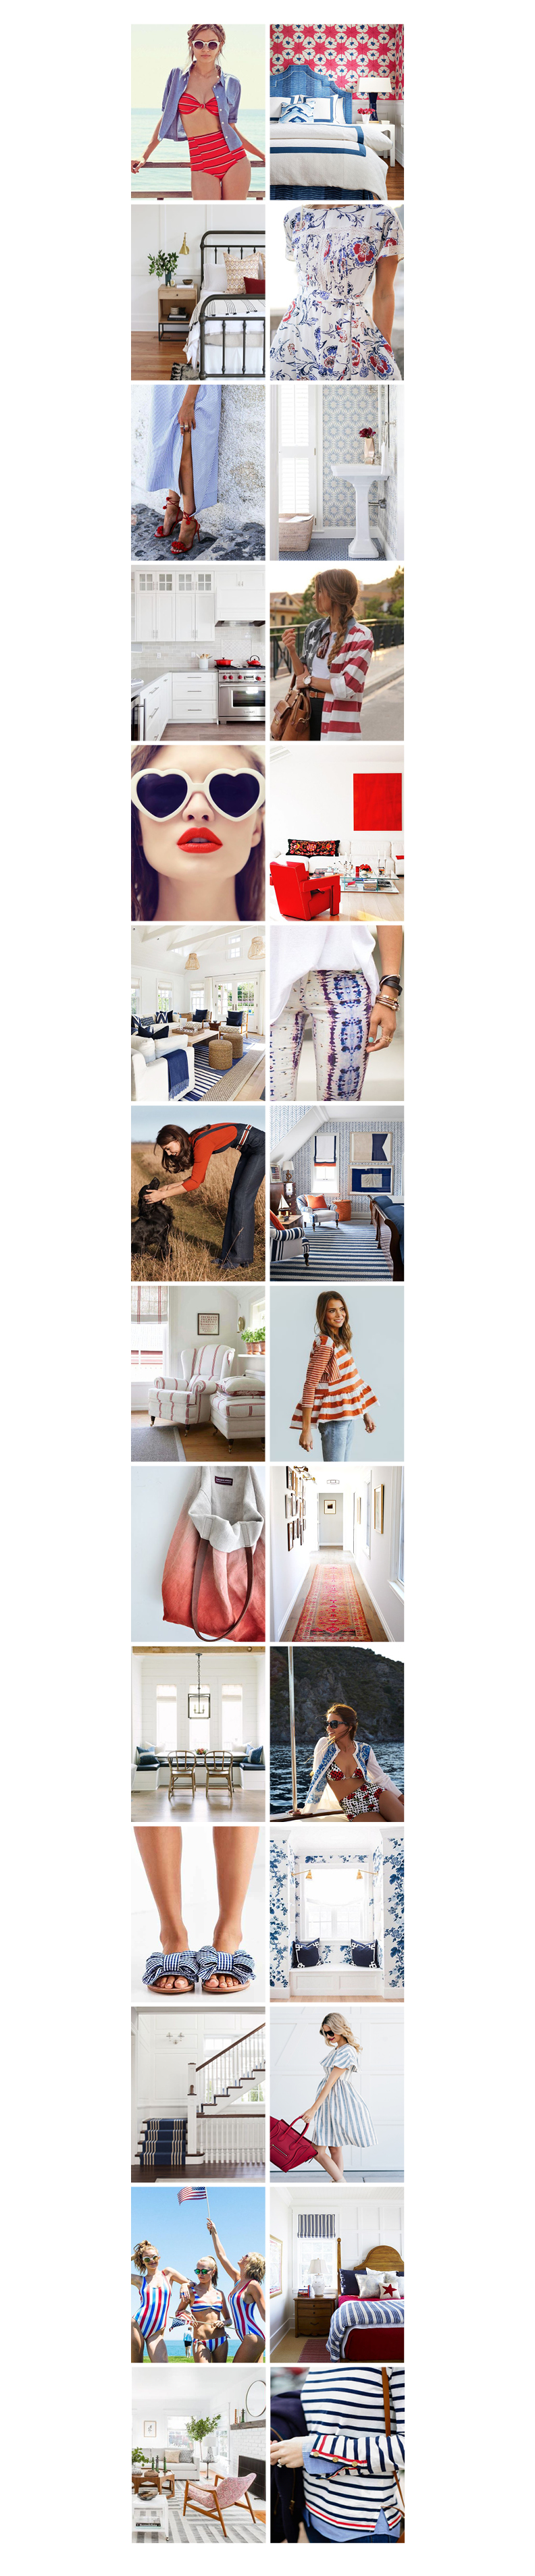 kris and kate studio_fashion vs interior trends_red white and blue